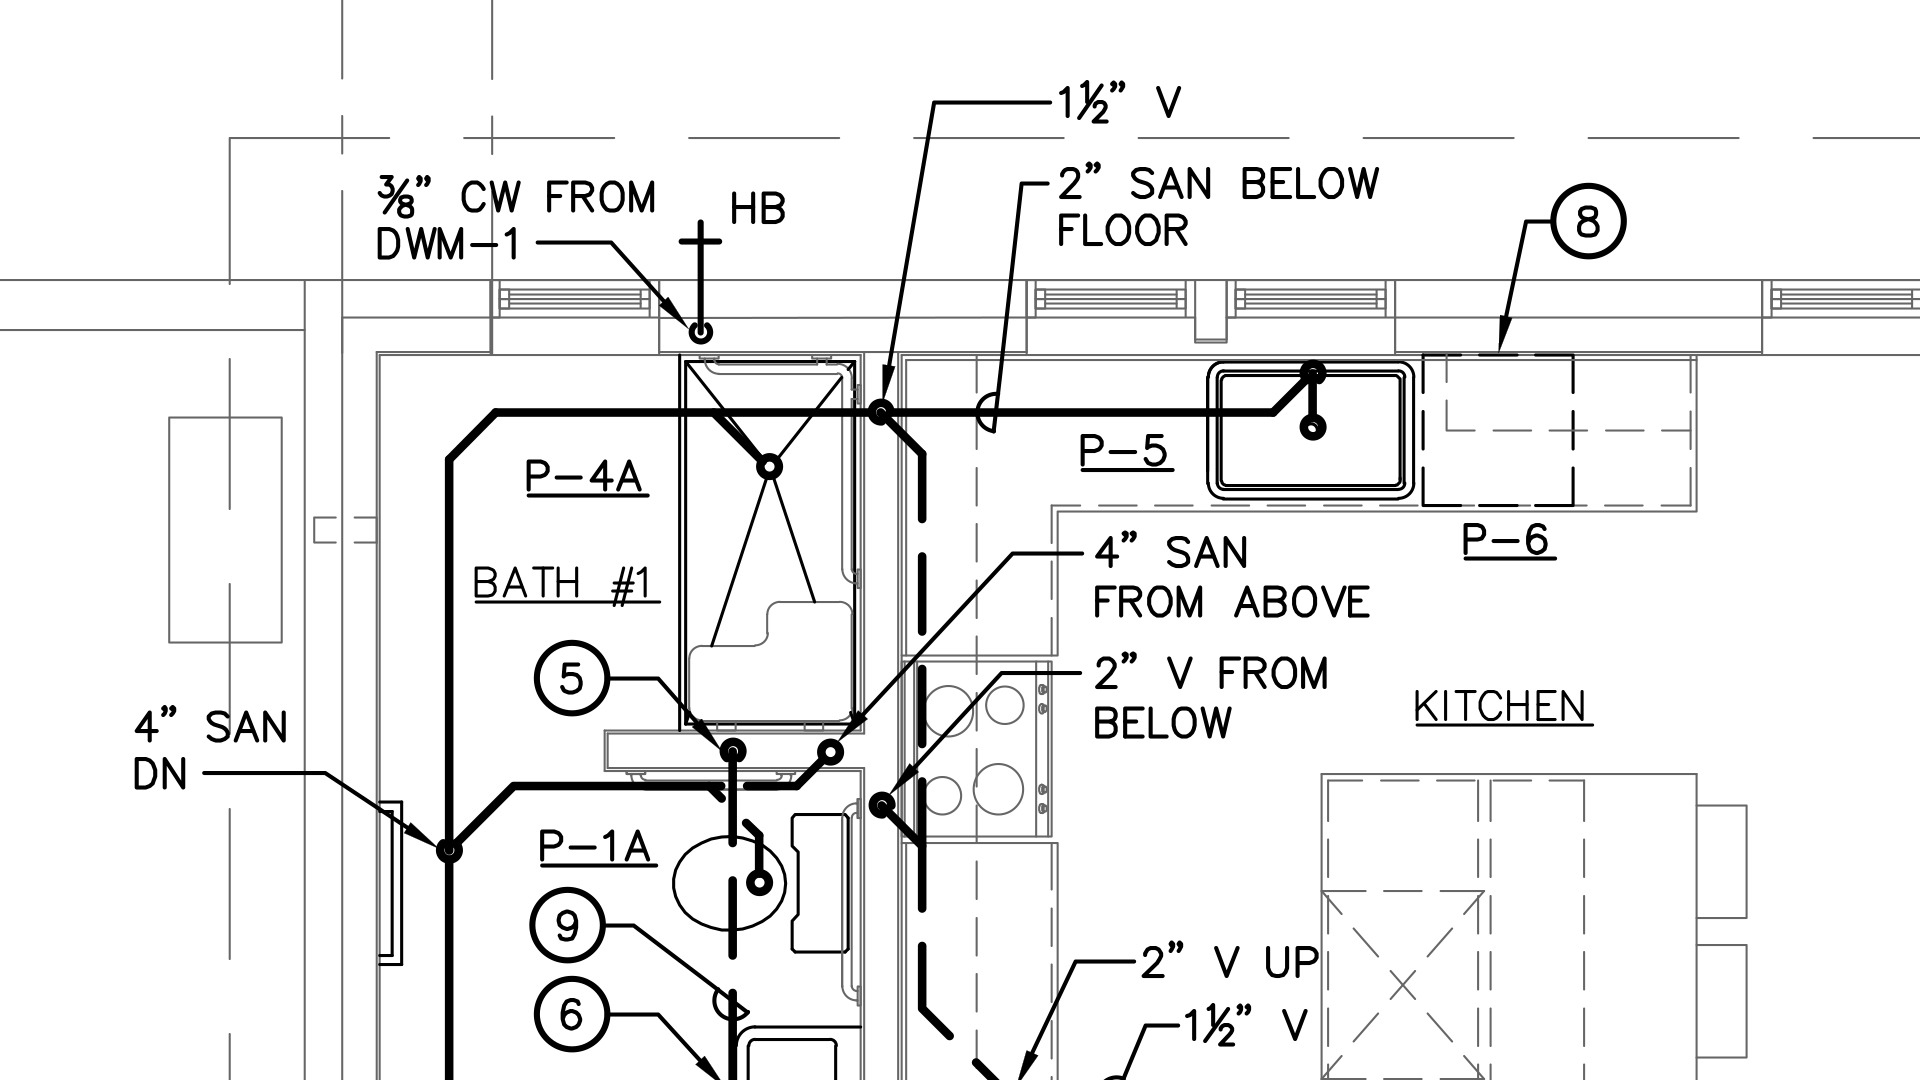 Learning plangrid digital construction drawings malvernweather Image collections